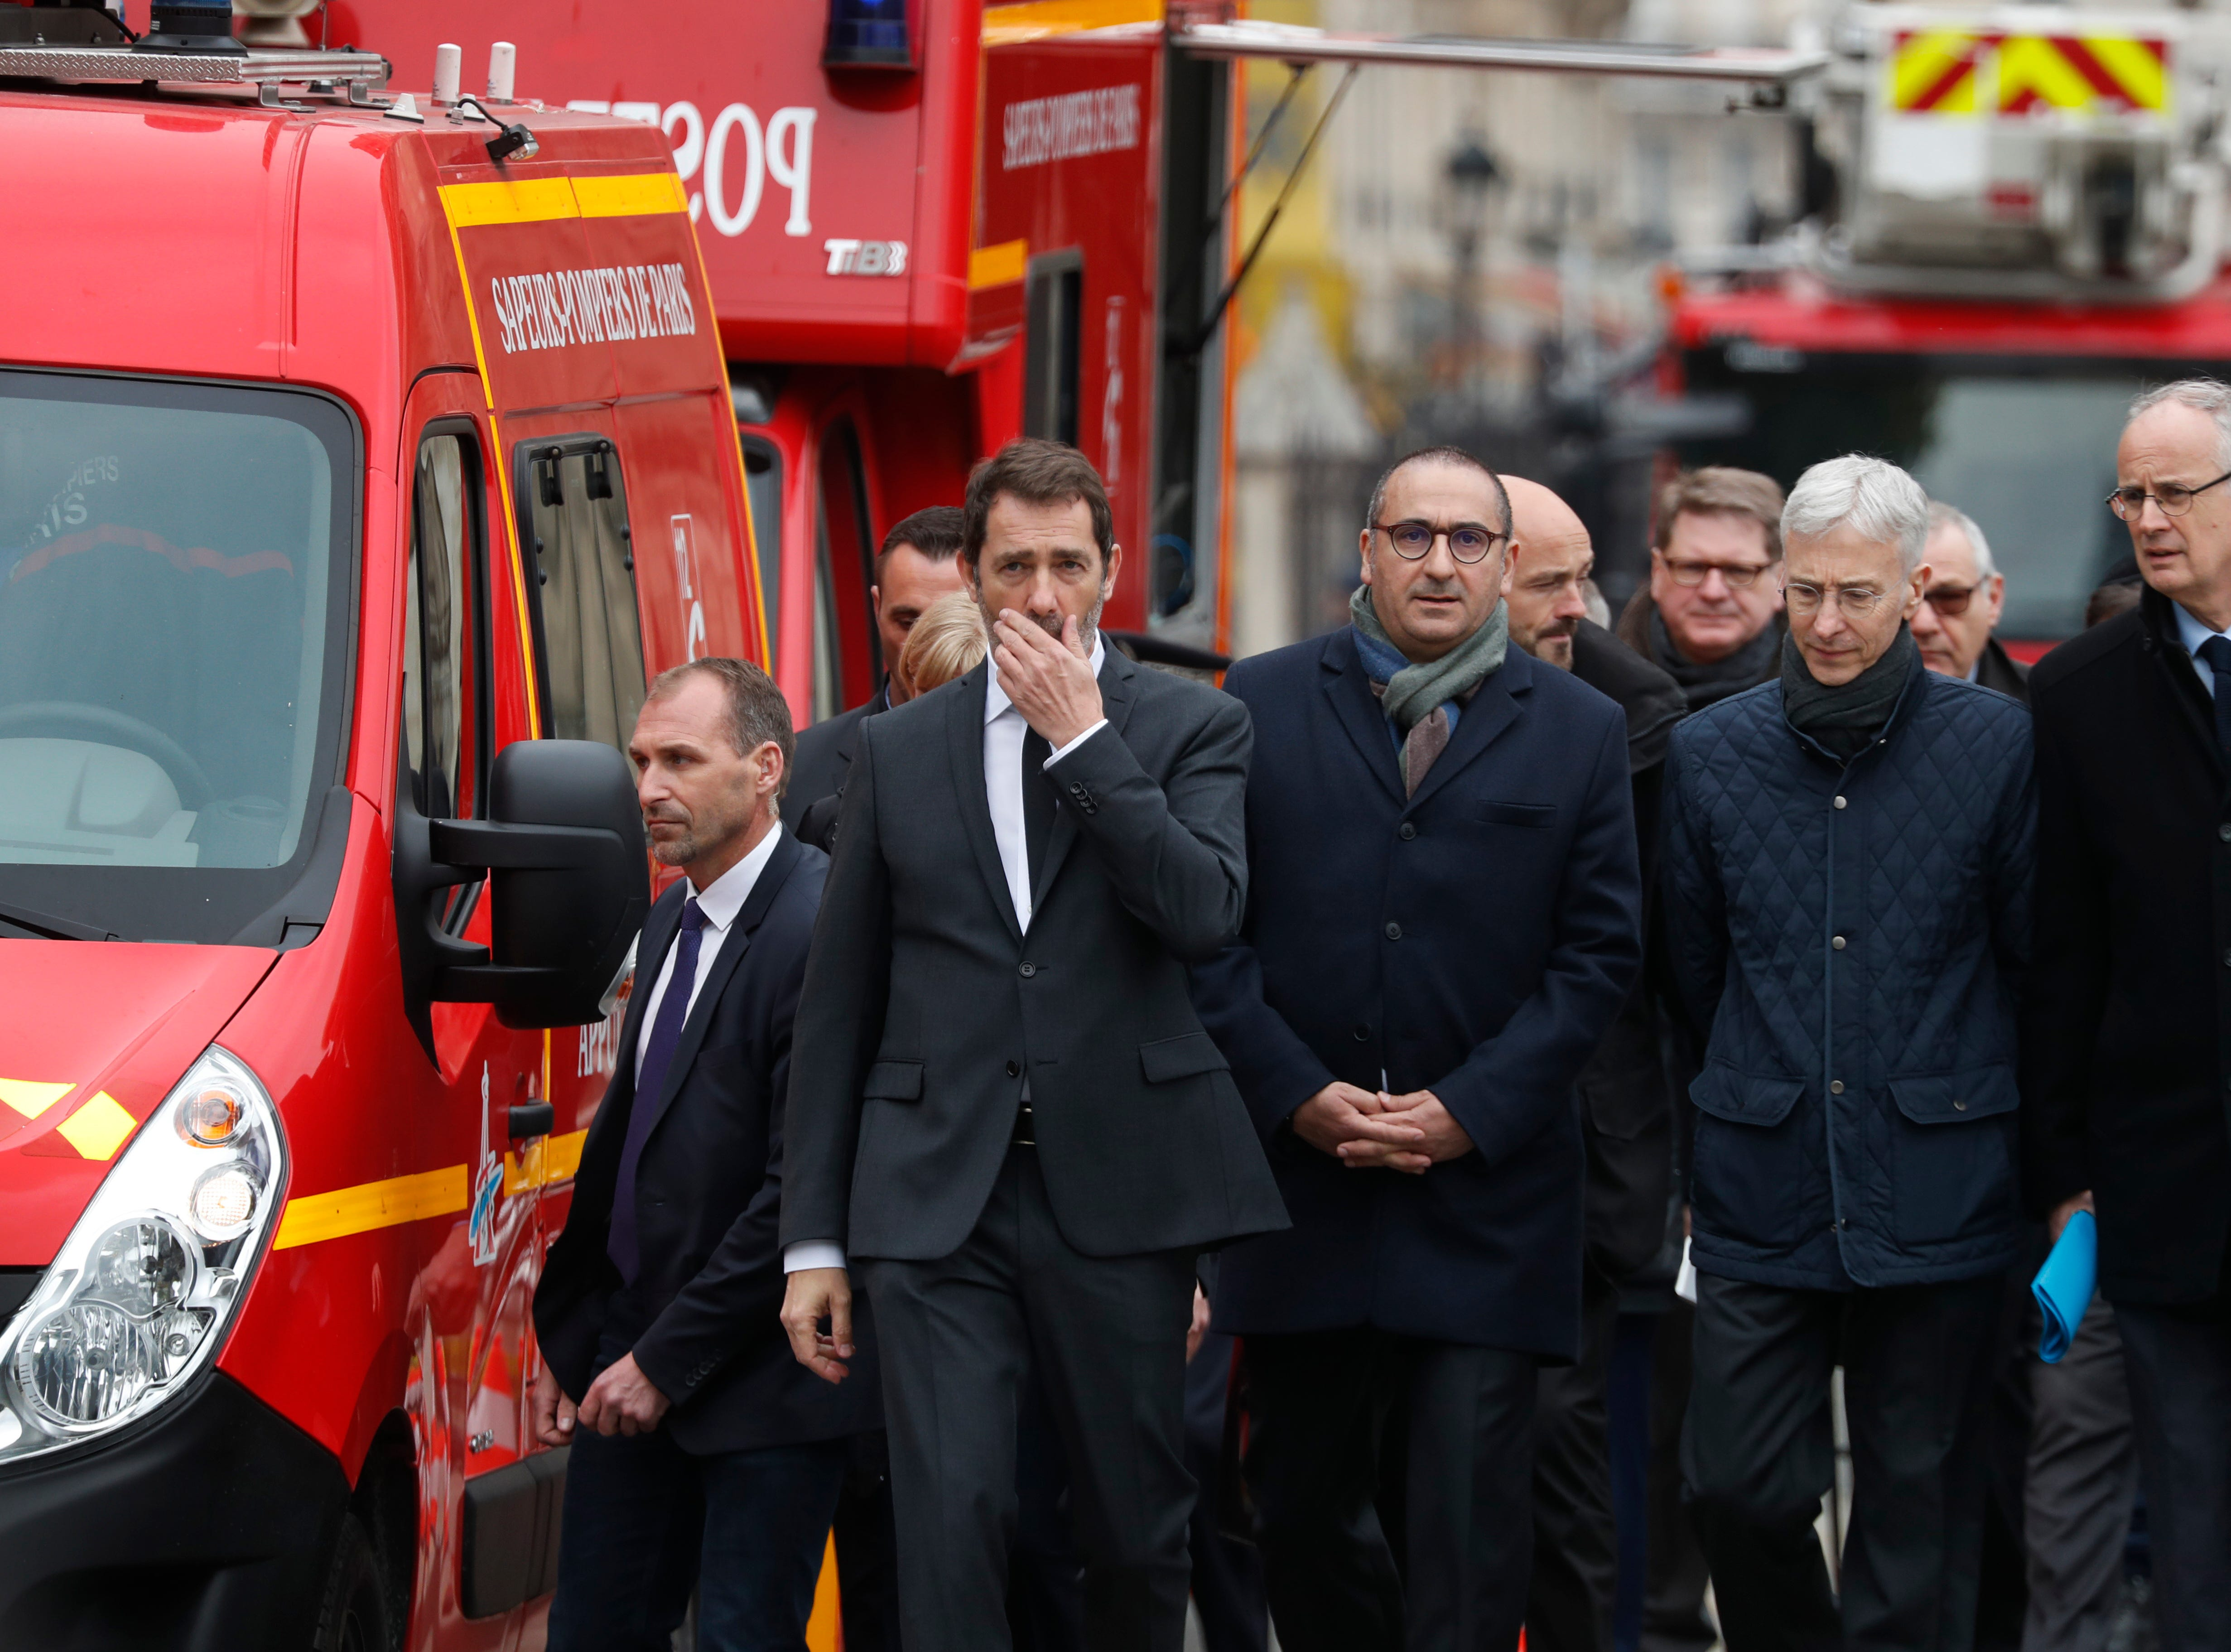 French Interior Minister Christophe Castaner, second left, and deputy Interior Minister Laurent Nunez, center, arrive at the damaged Notre Dame cathedral after the fire in Paris, Tuesday, April 16, 2019. Experts are assessing the blackened shell of Paris' iconic Notre Dame cathedral to establish next steps to save what remains after a devastating fire destroyed much of the almost 900-year-old building. With the fire that broke out Monday evening and quickly consumed the cathedral now under control, attention is turning to ensuring the structural integrity of the remaining building. (AP Photo/Thibault Camus)